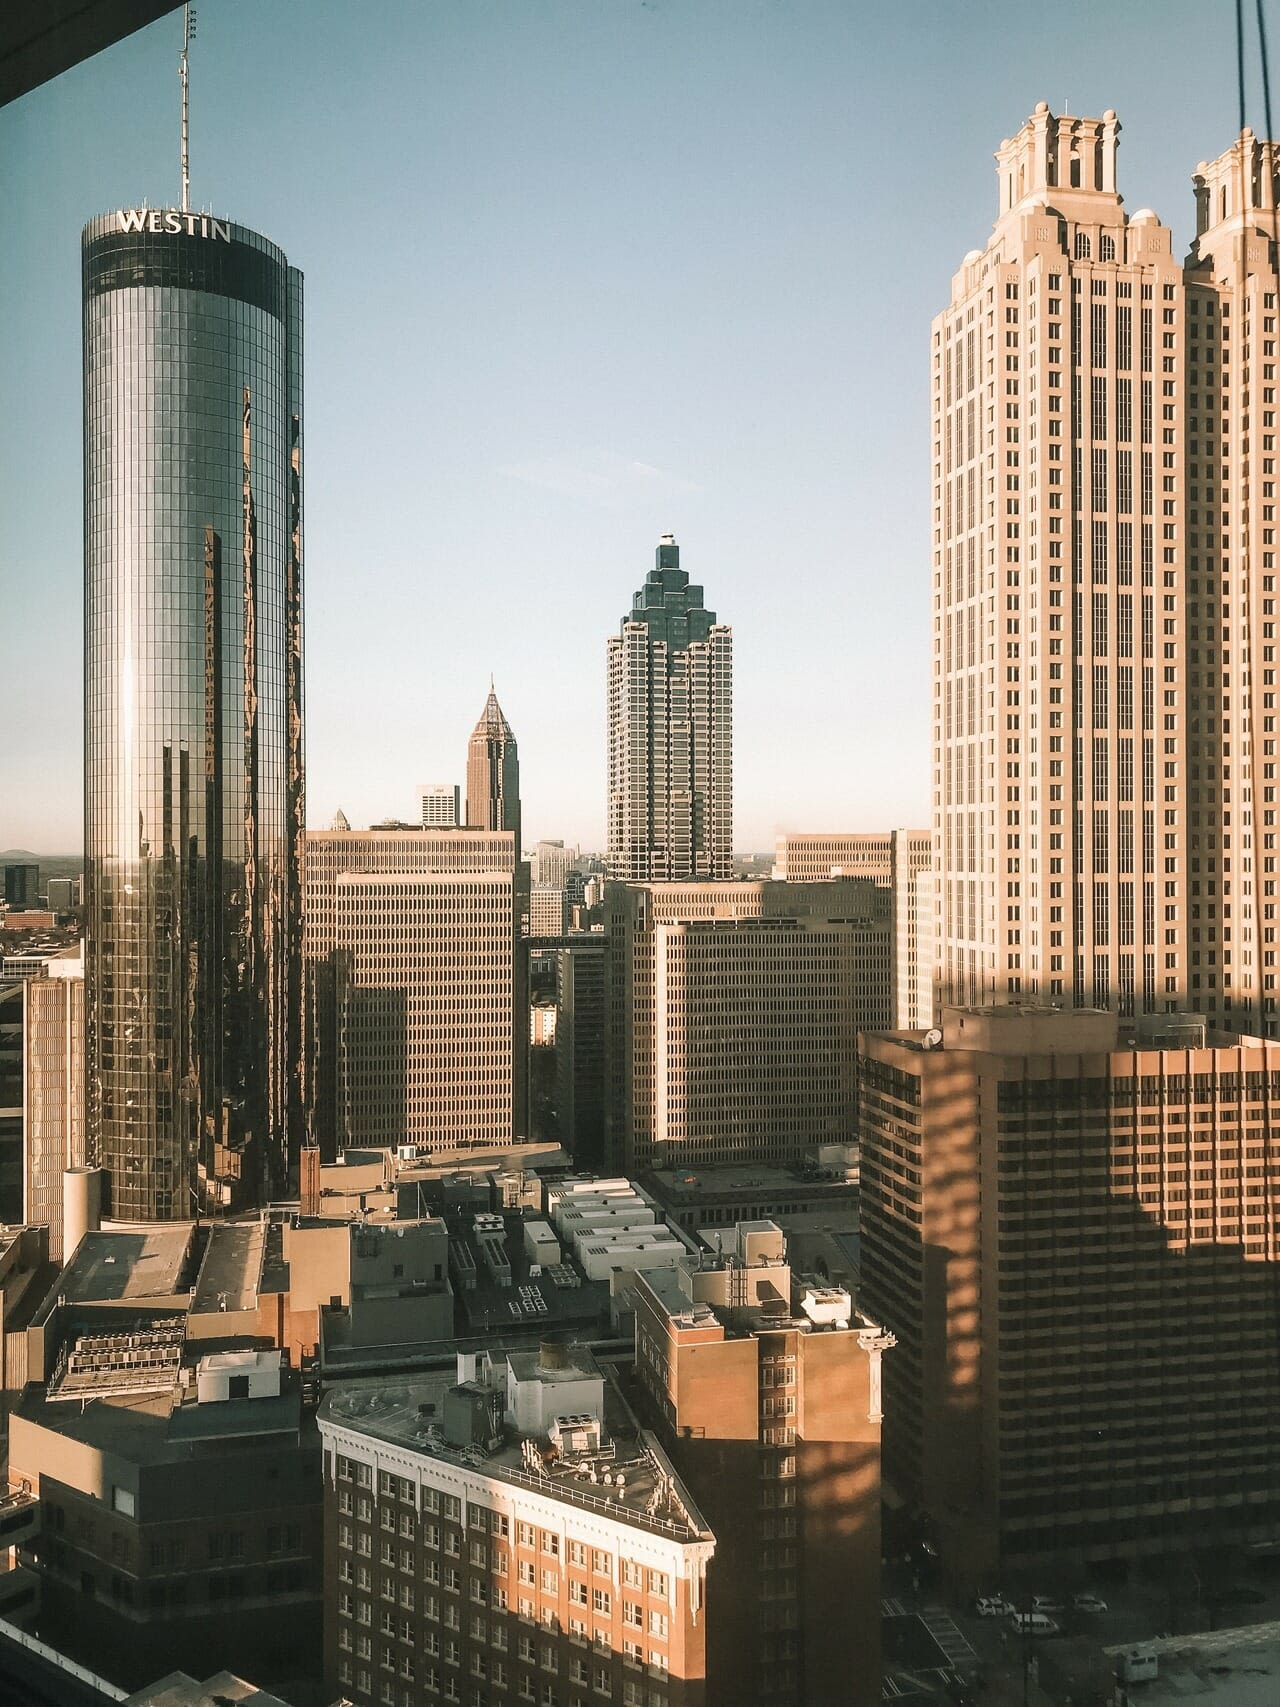 View from the CallRail office showing skyscrapers